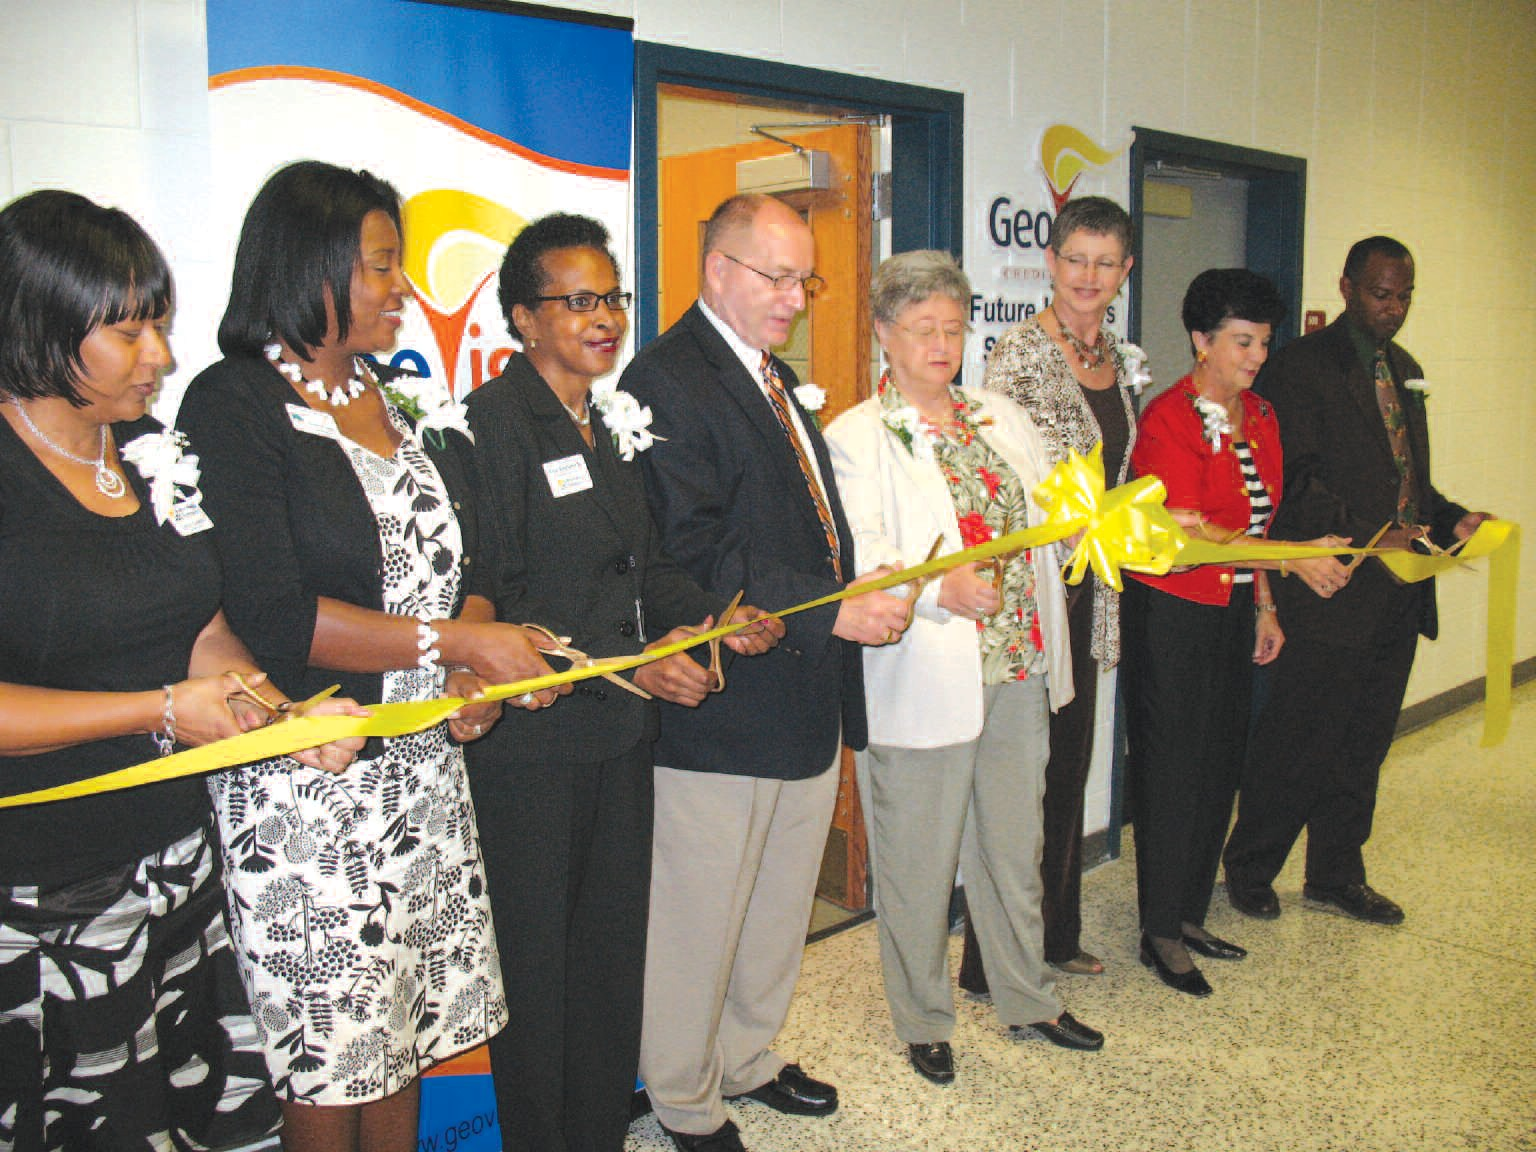 Among those participating in the ribbon cutting are Carol Gamble, center leader, is on the far left. Dr. Thomas Lockamy is in the center. To the right of Lockamy is Elaine Tuten, GeoVista CEO. And on the far right is Derrick Muhammad, center director and administrator.